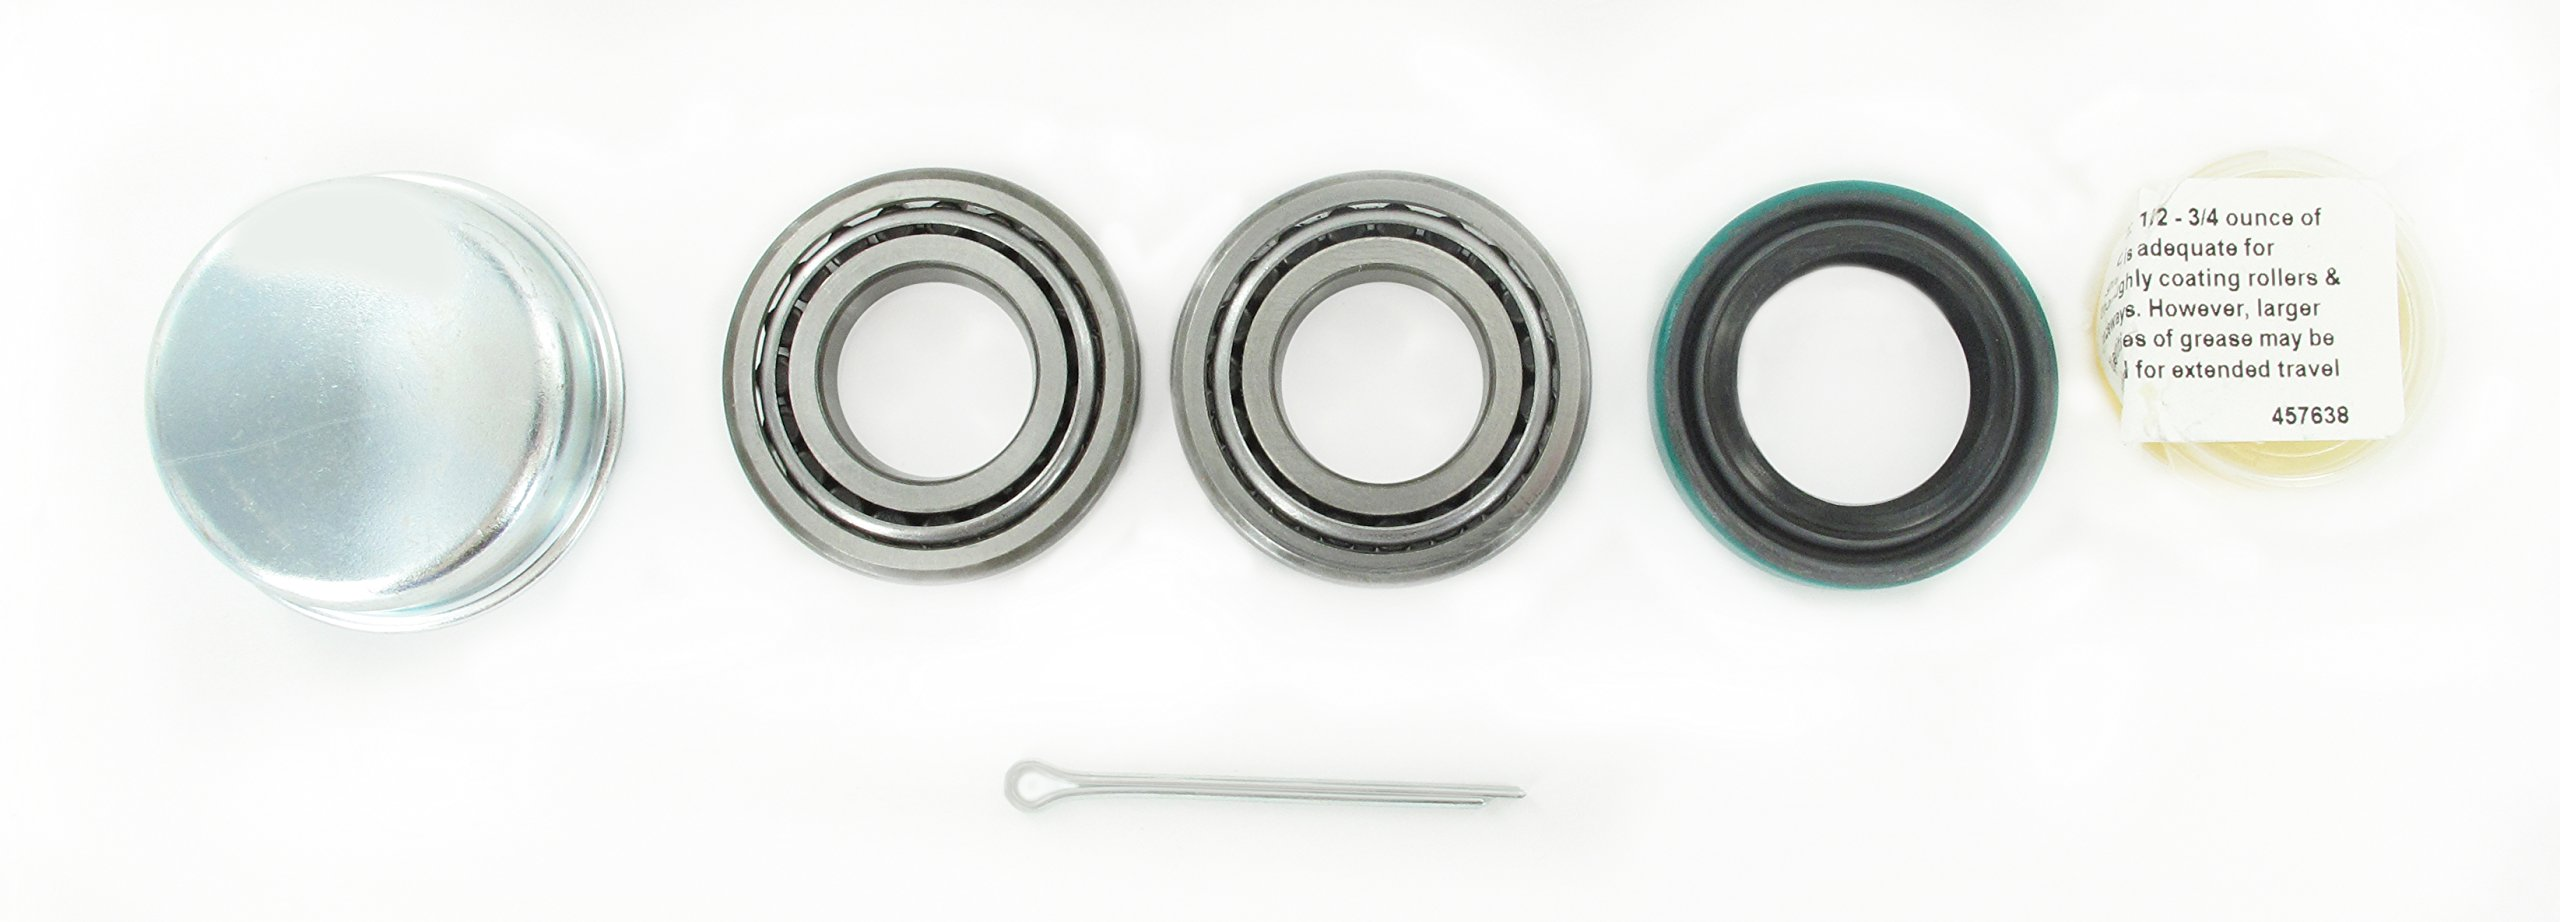 SKF 21 Recreational Trailer Seal and Bearing Kit (1-Inch Axle)